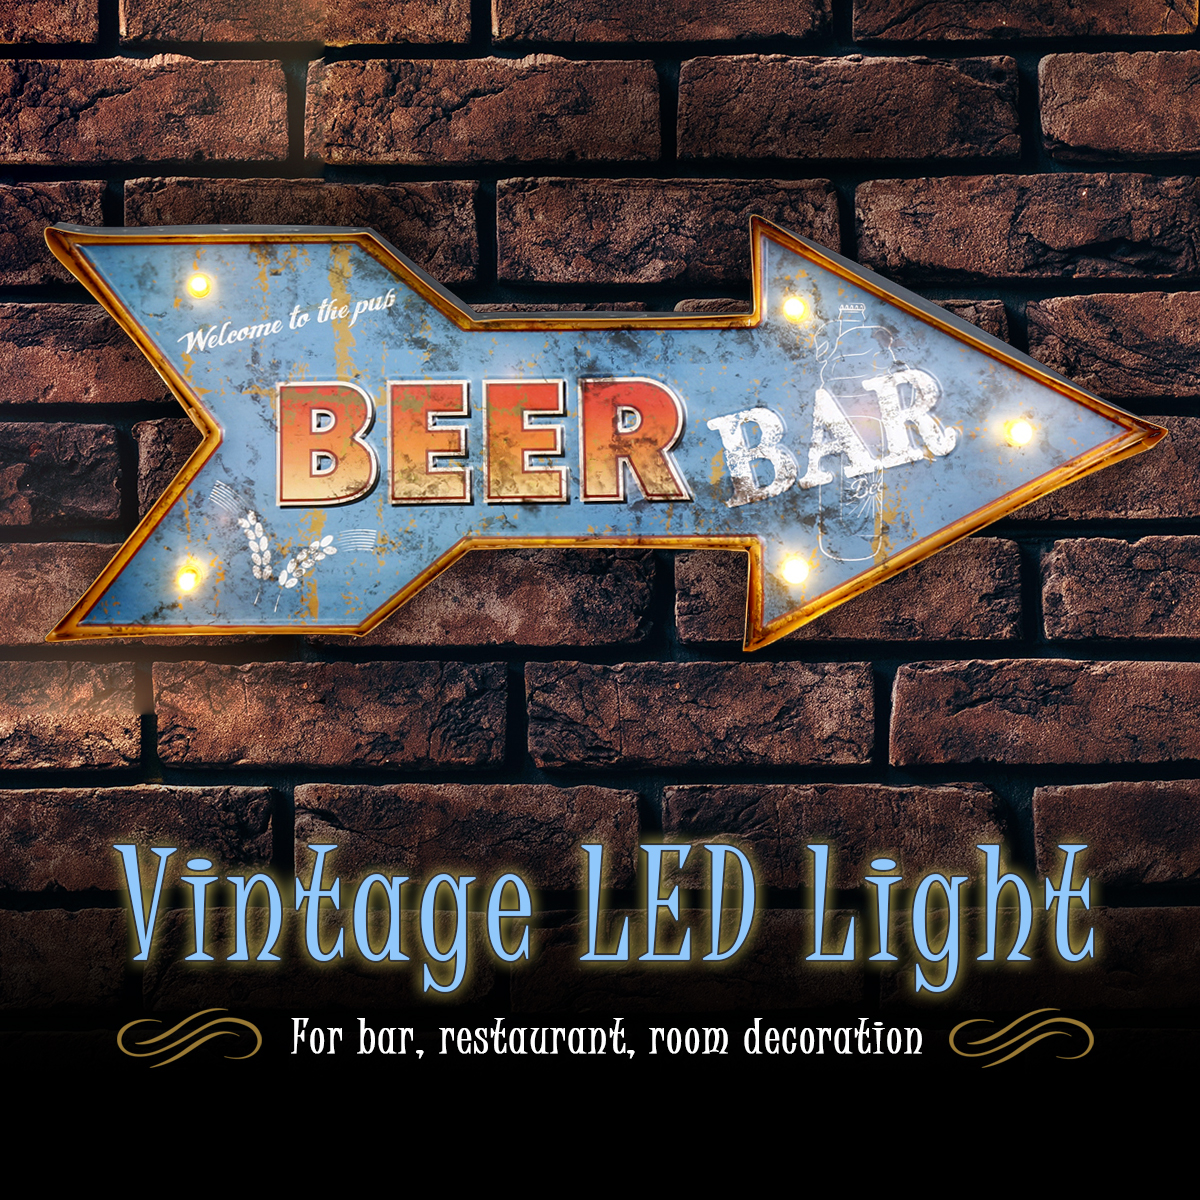 LED Mental Light Vintage Arrow Beer Sign Bar Game Room Wall Hangings Decorations Home Decor filtero ftt 03 шланг для пылесосов универсальный